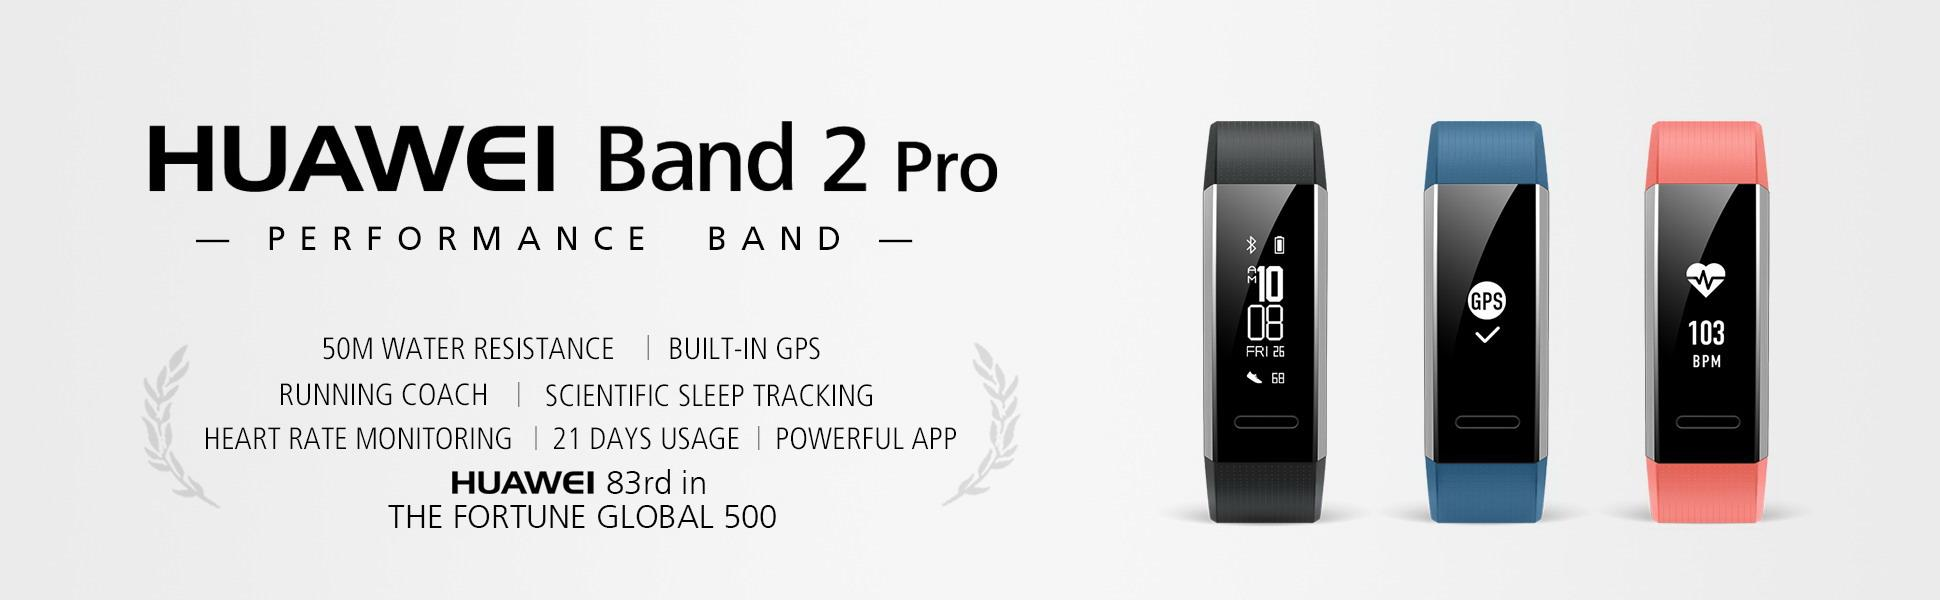 Huawei Band 2 Pro All In One Smart Fitness Wristband Black Watch Stainless Steel Mesh Us Warranty The Smooth Ergonomic Design Of Merges Seamlessly With Your Wrist To Empowering You Take On Any Challenge